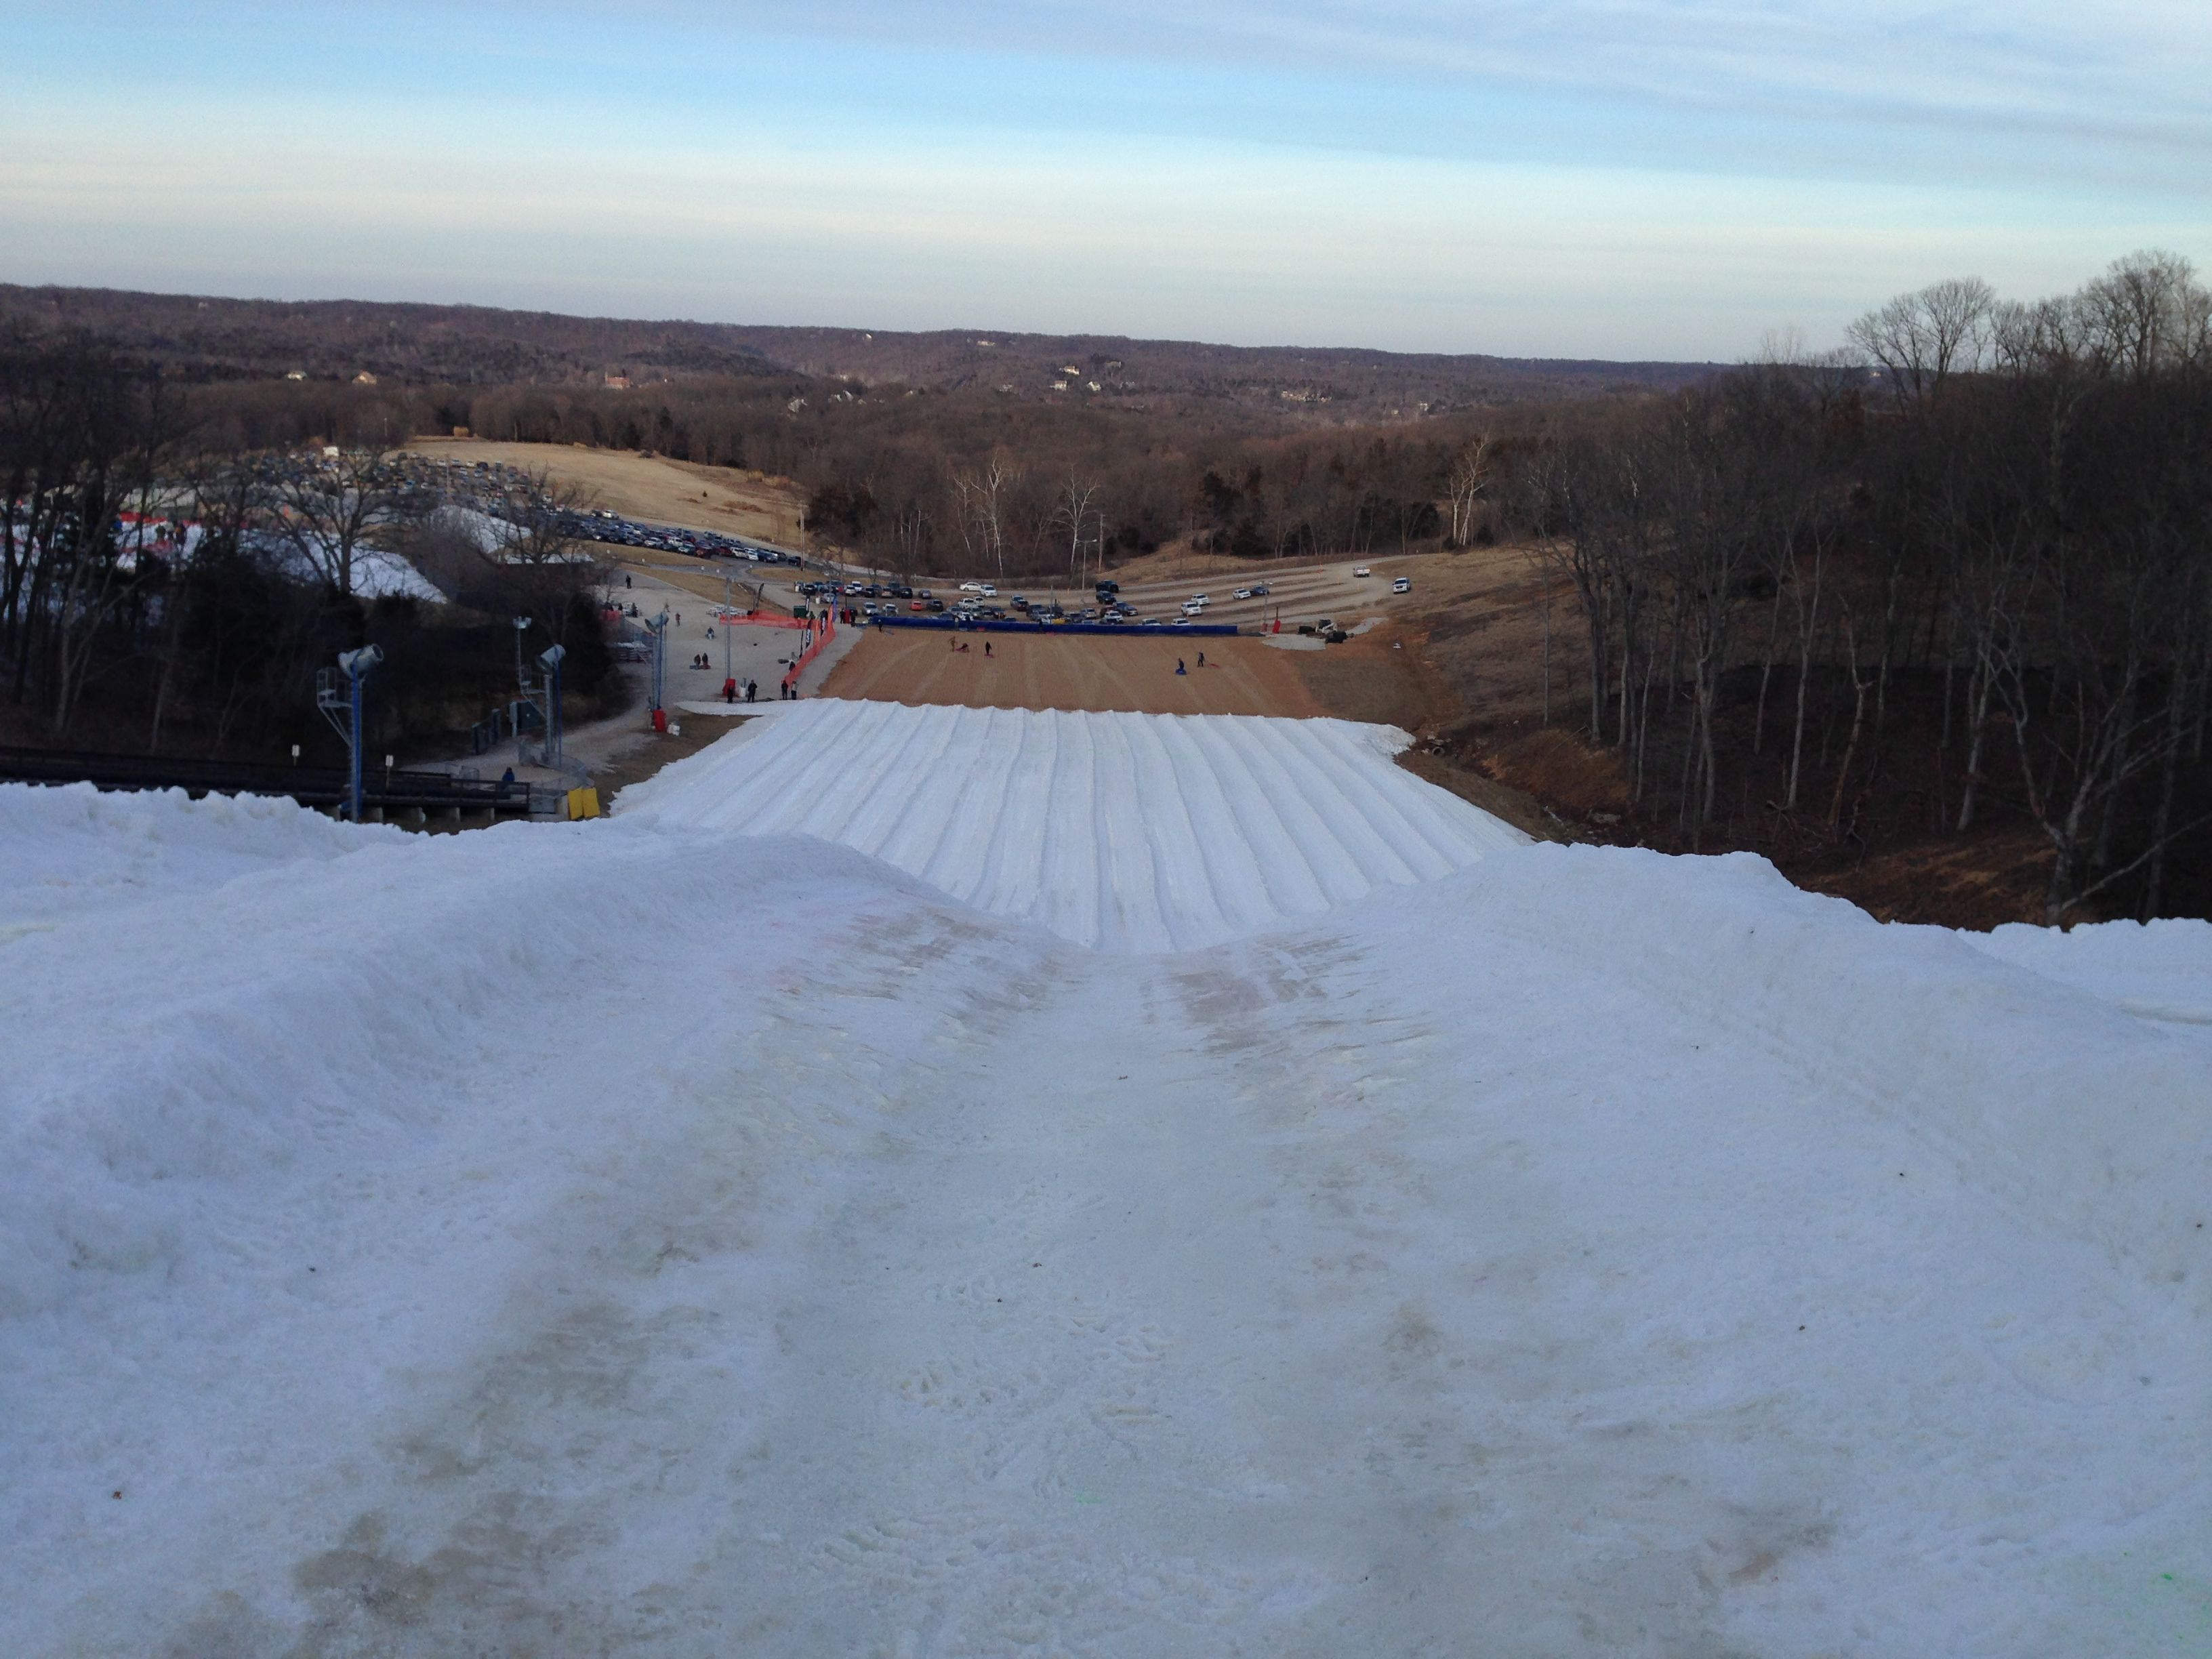 a guide to hidden valley ski resort near st. louis